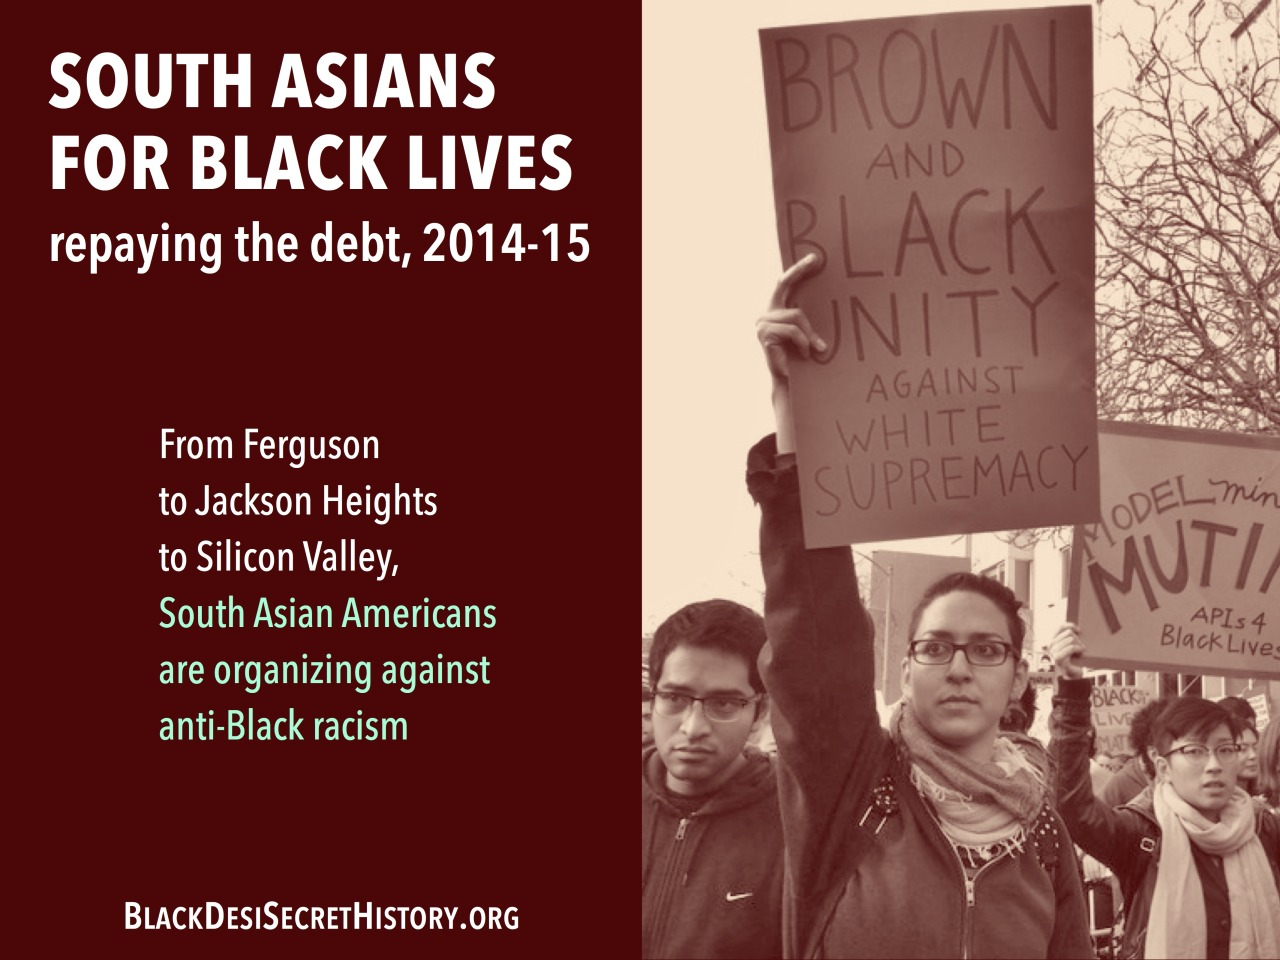 SOUTH ASIANS FOR BLACK LIVES, repaying the debt, 2014-15: From Ferguson to Jackson Heights to Silicon Valley, South Asian Americans are organizing against anti-Black racism.